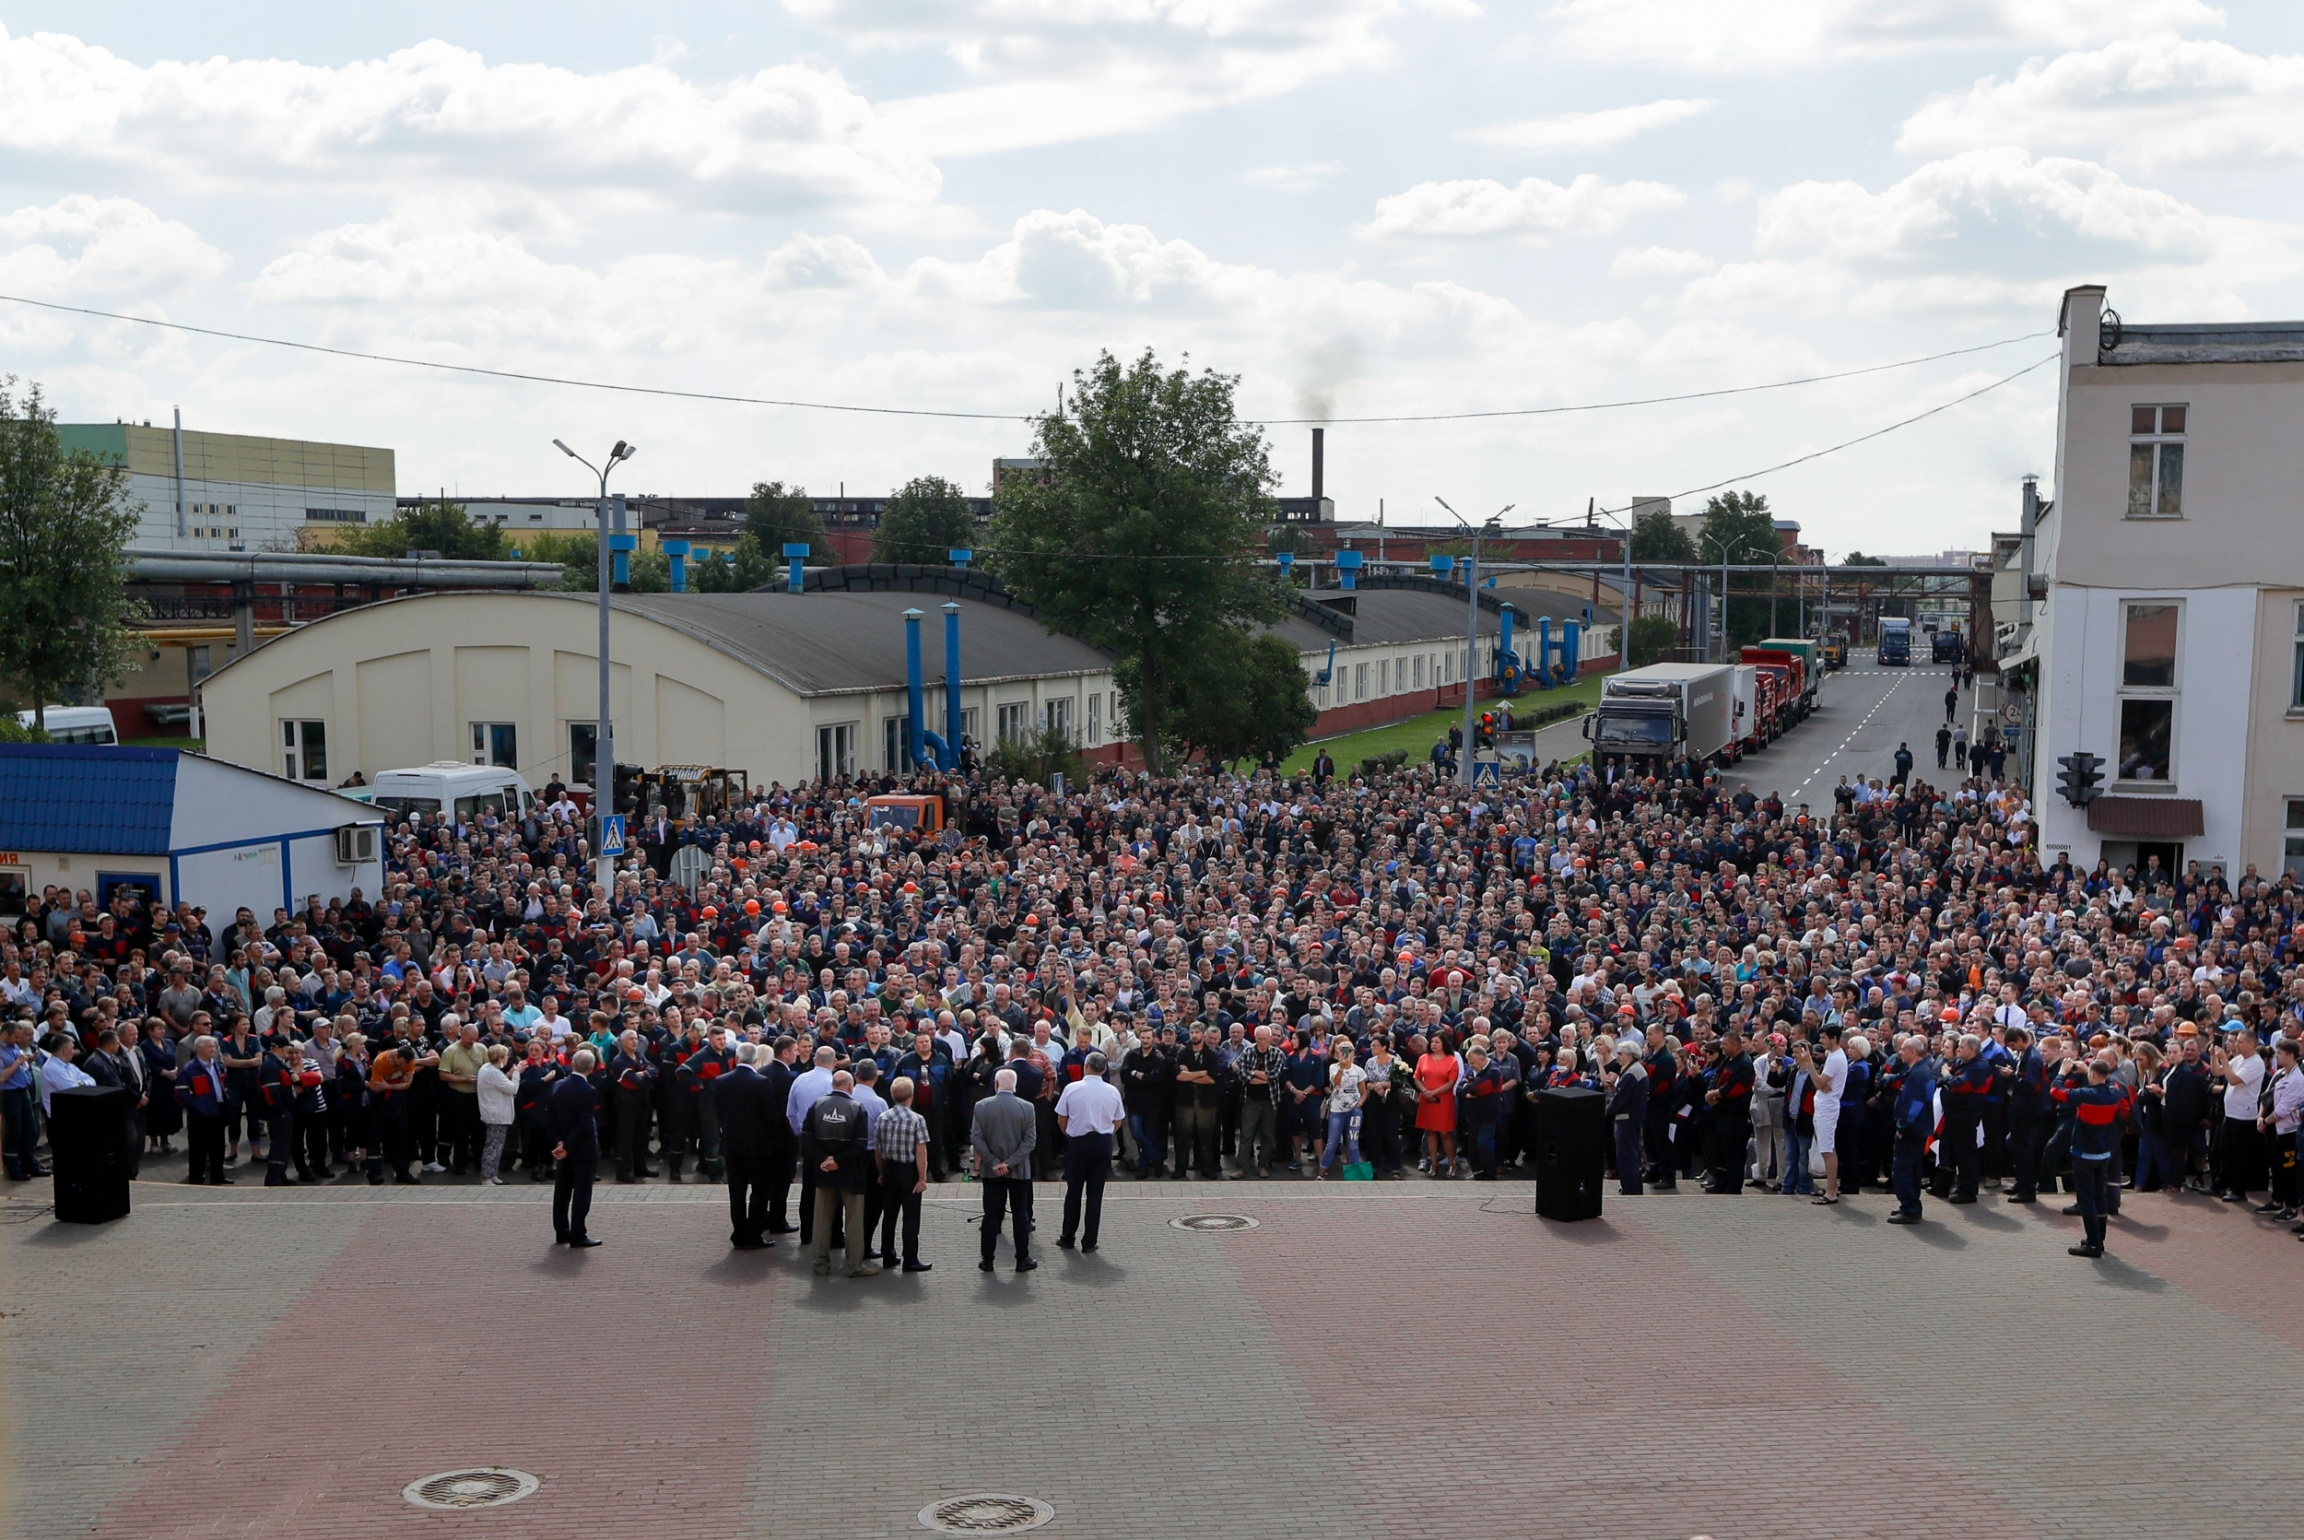 A large crowd of people are shown in the street with a factory in the background.